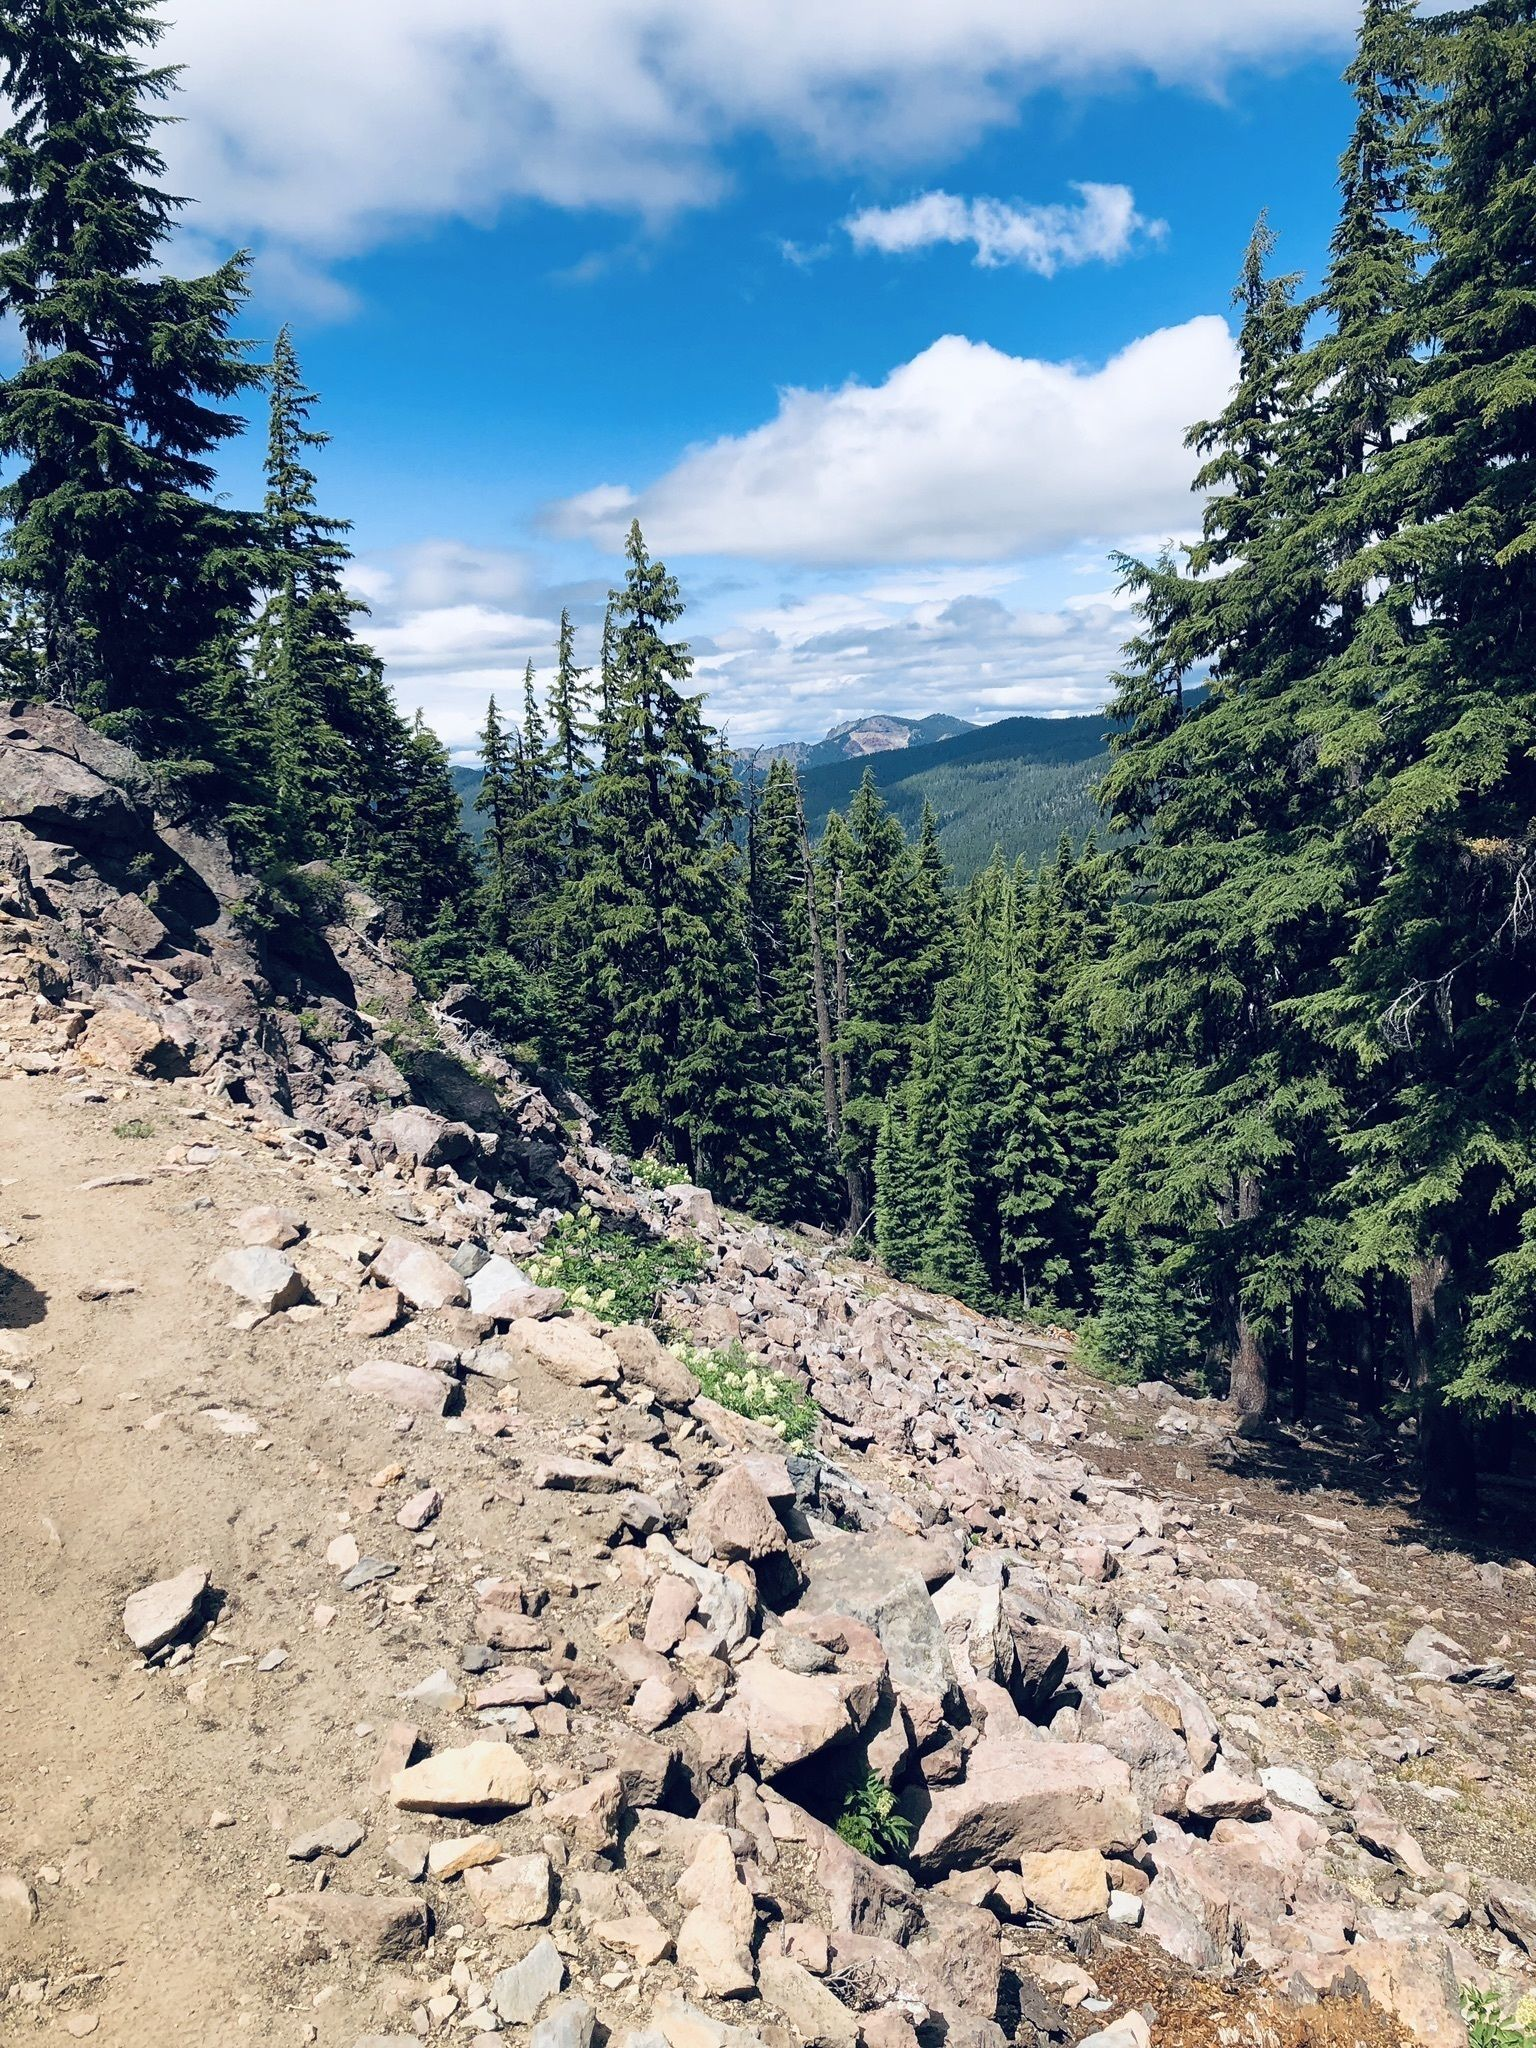 PCT: OR Section D - Highway 138 to Highway 58 (Willamette